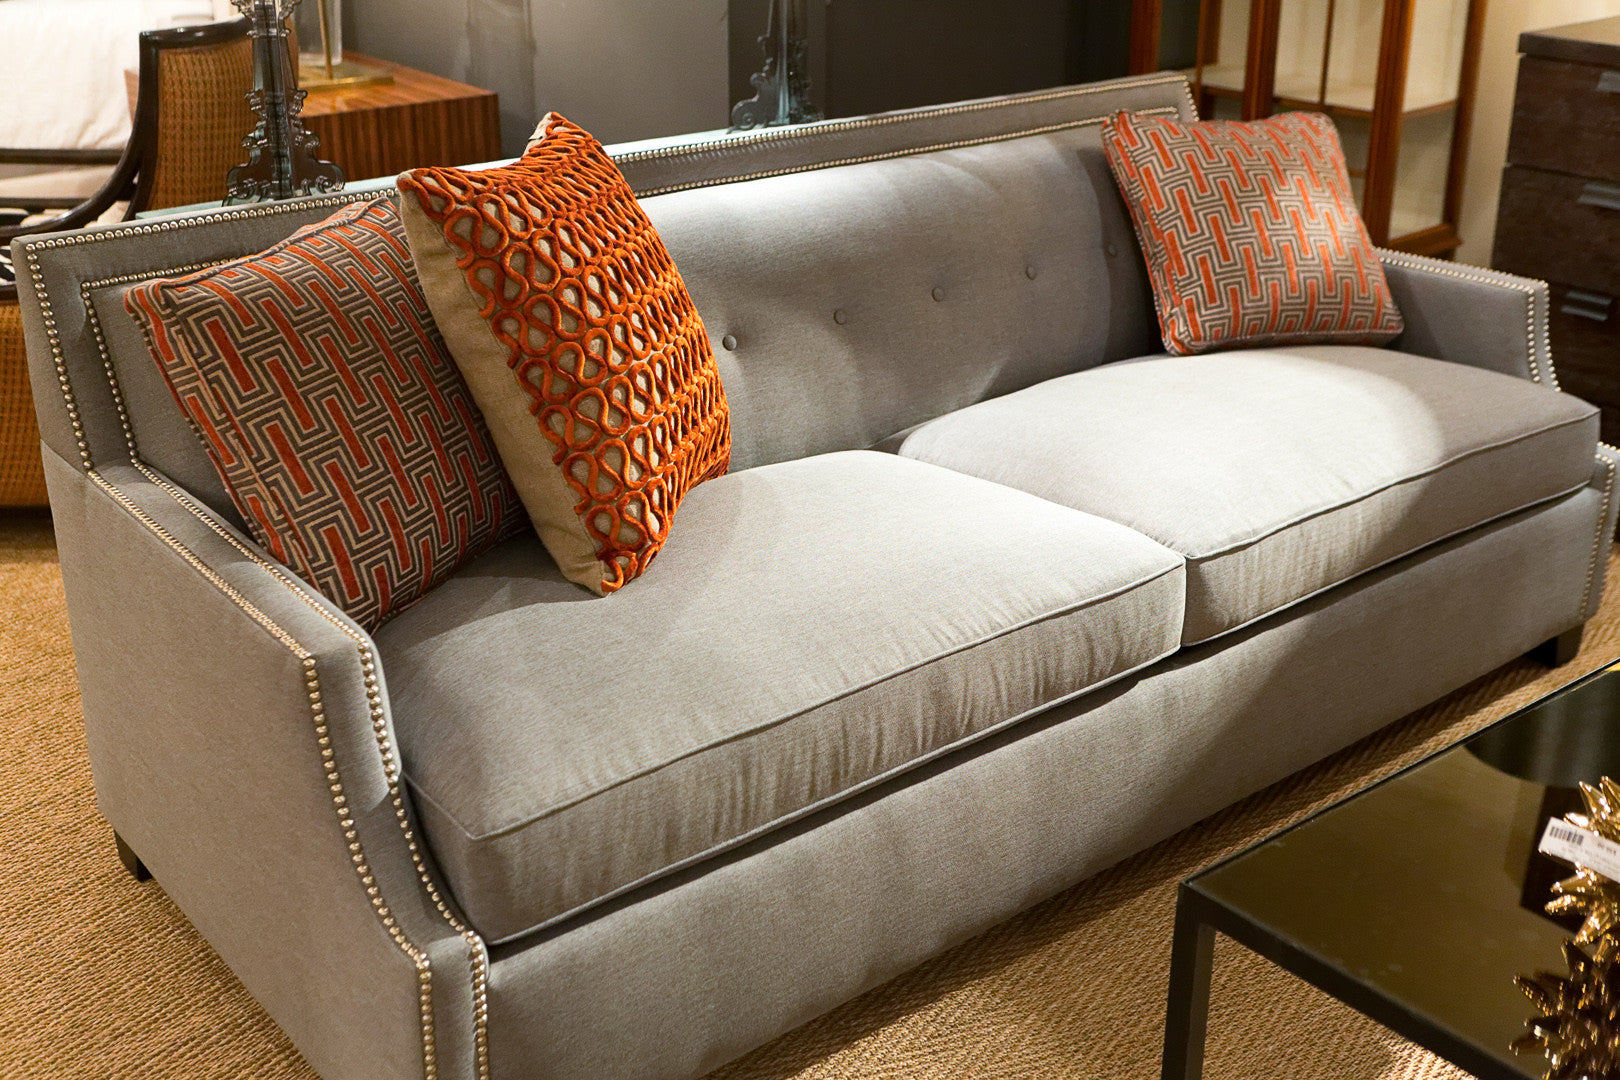 Franco sleeper sofa bernhardt furniture luxe home for Bernhardt chaise lounge